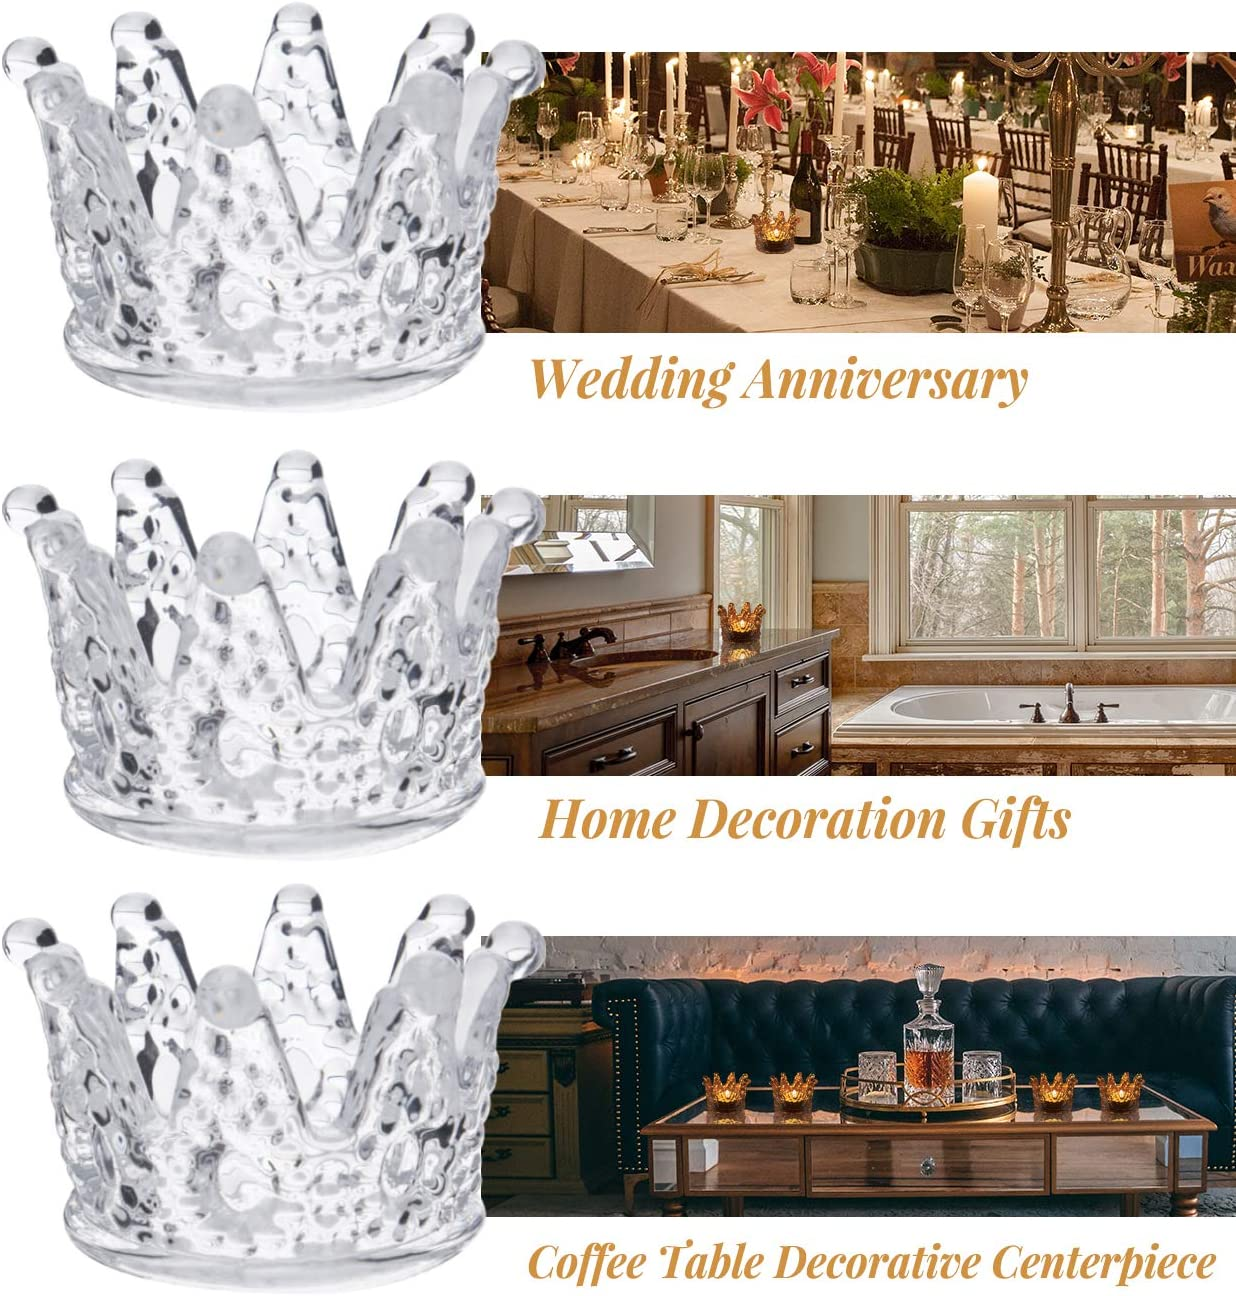 Crown Candle Holders for Wedding Decor and Home Decor Set of 6 CHAMBERY Glass Tealight Candle Holder